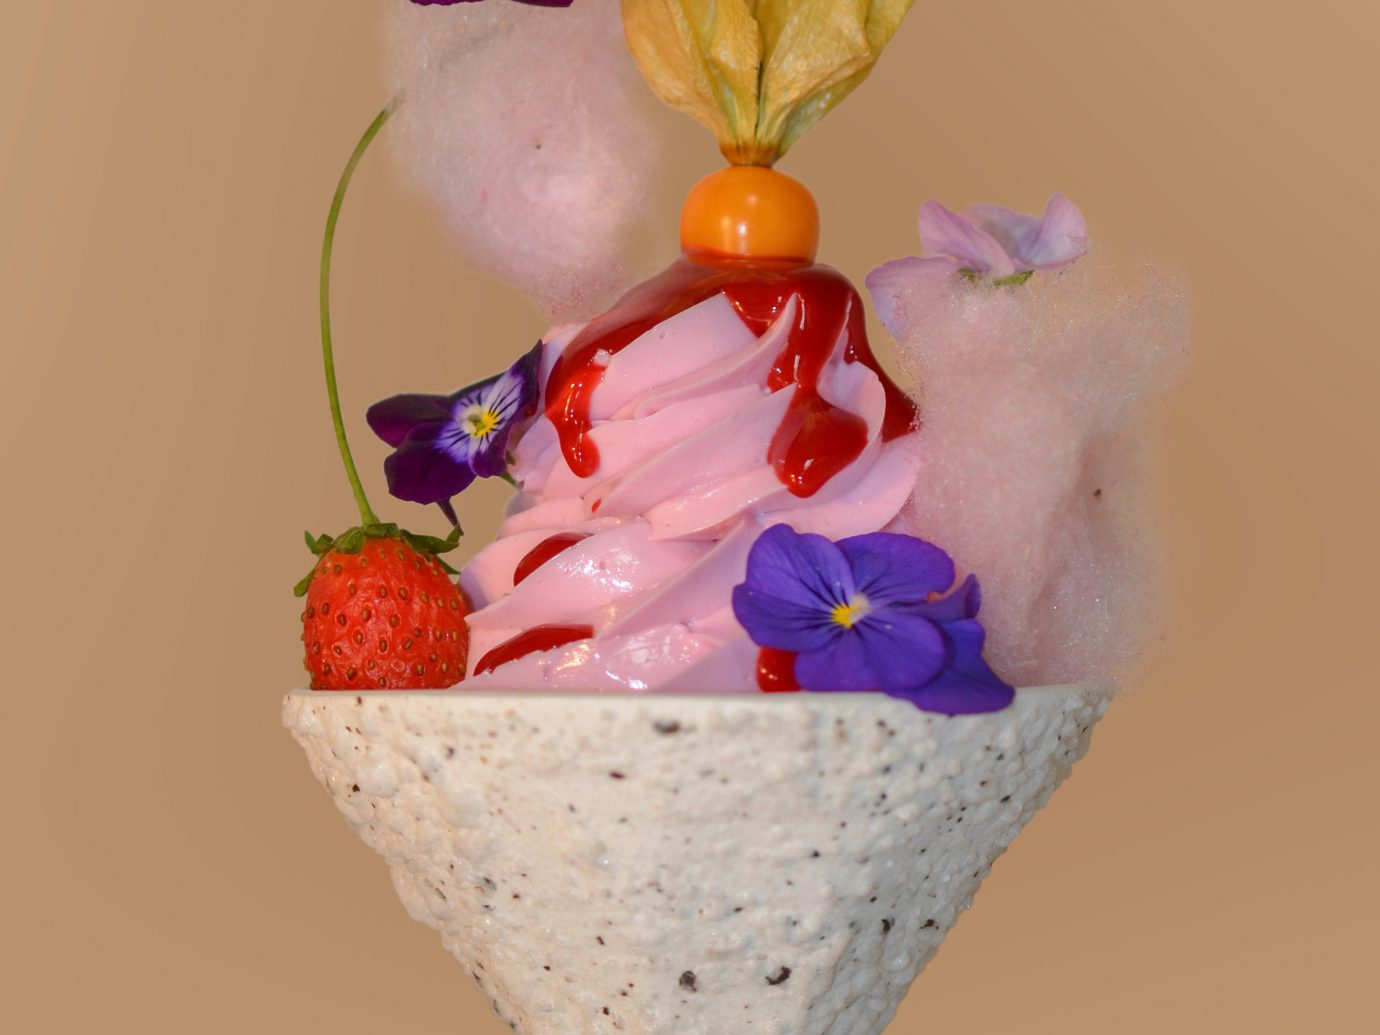 Food + Drink wall flower indoor dessert food petal organ ice cream cone stuffed flower bouquet toy decorated colored